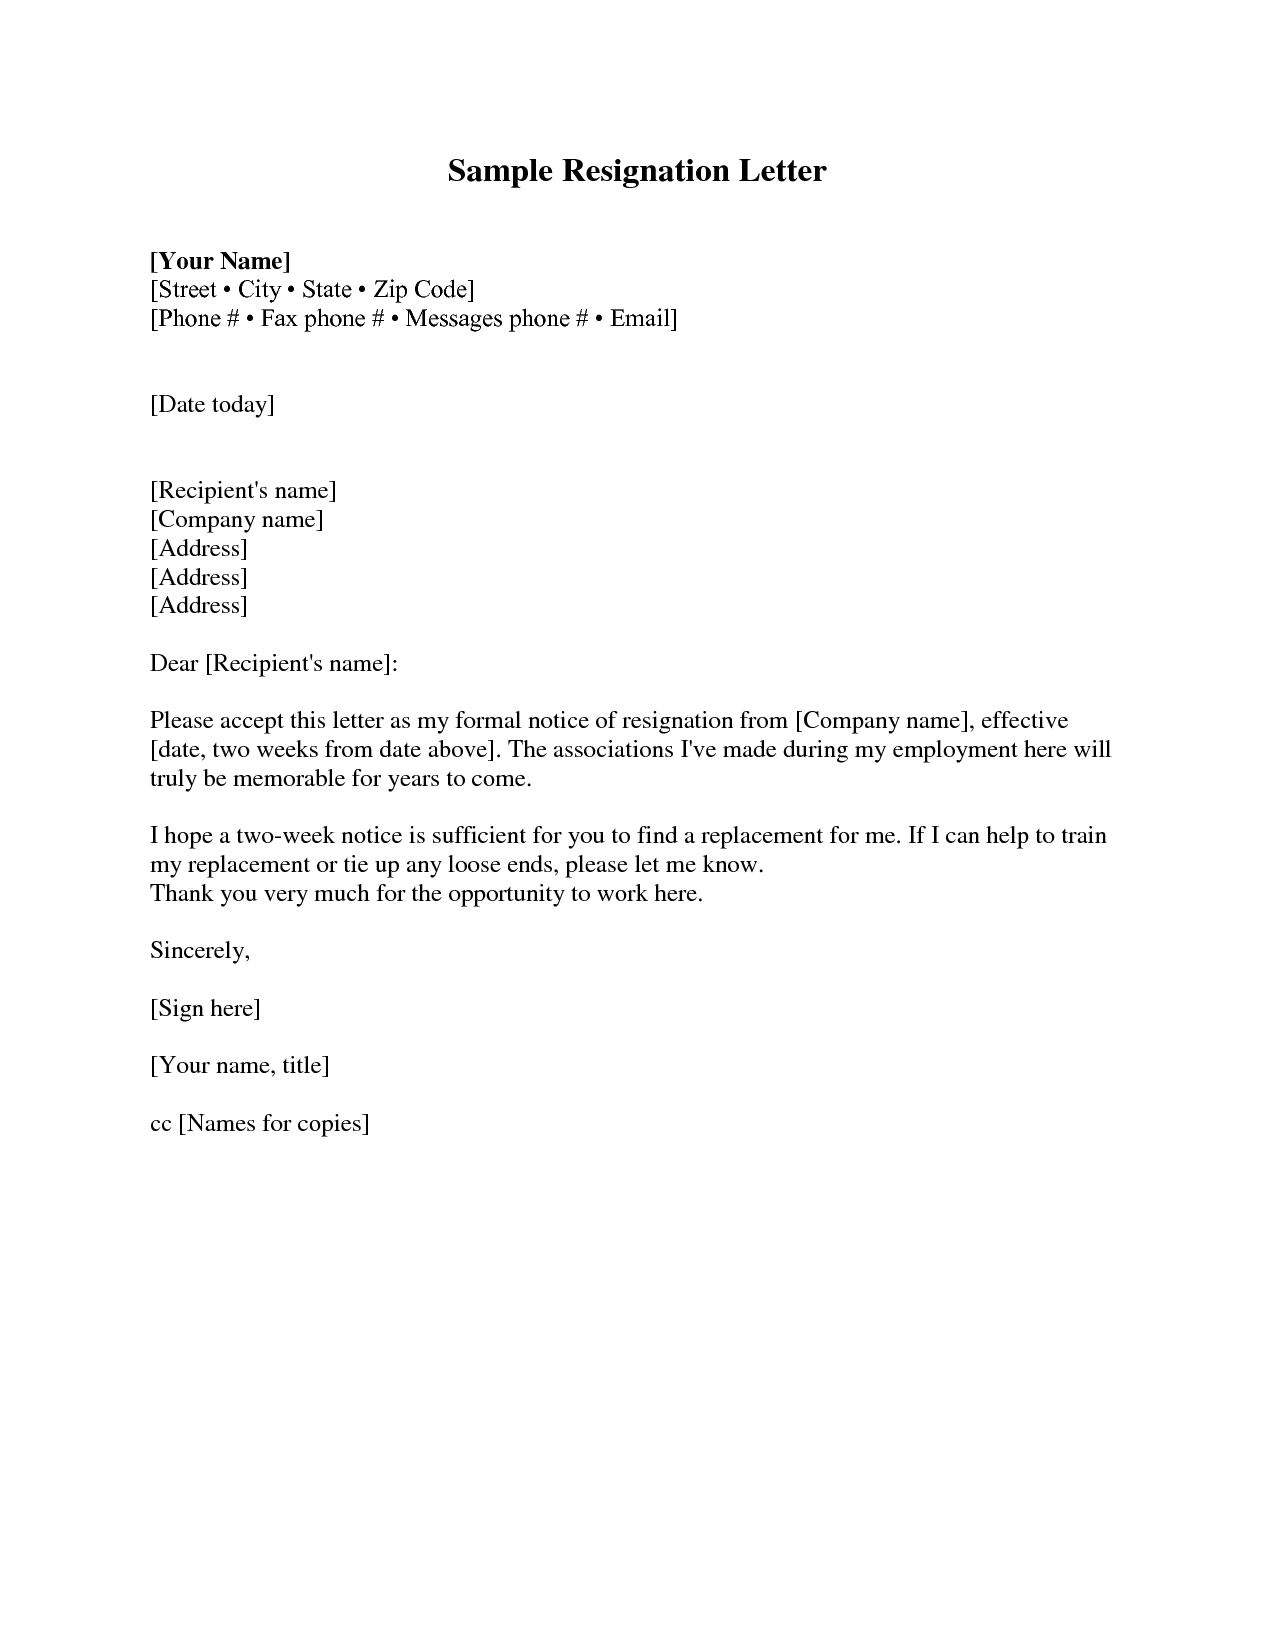 Standard Resignation Letter Template Word Examples Letter Template